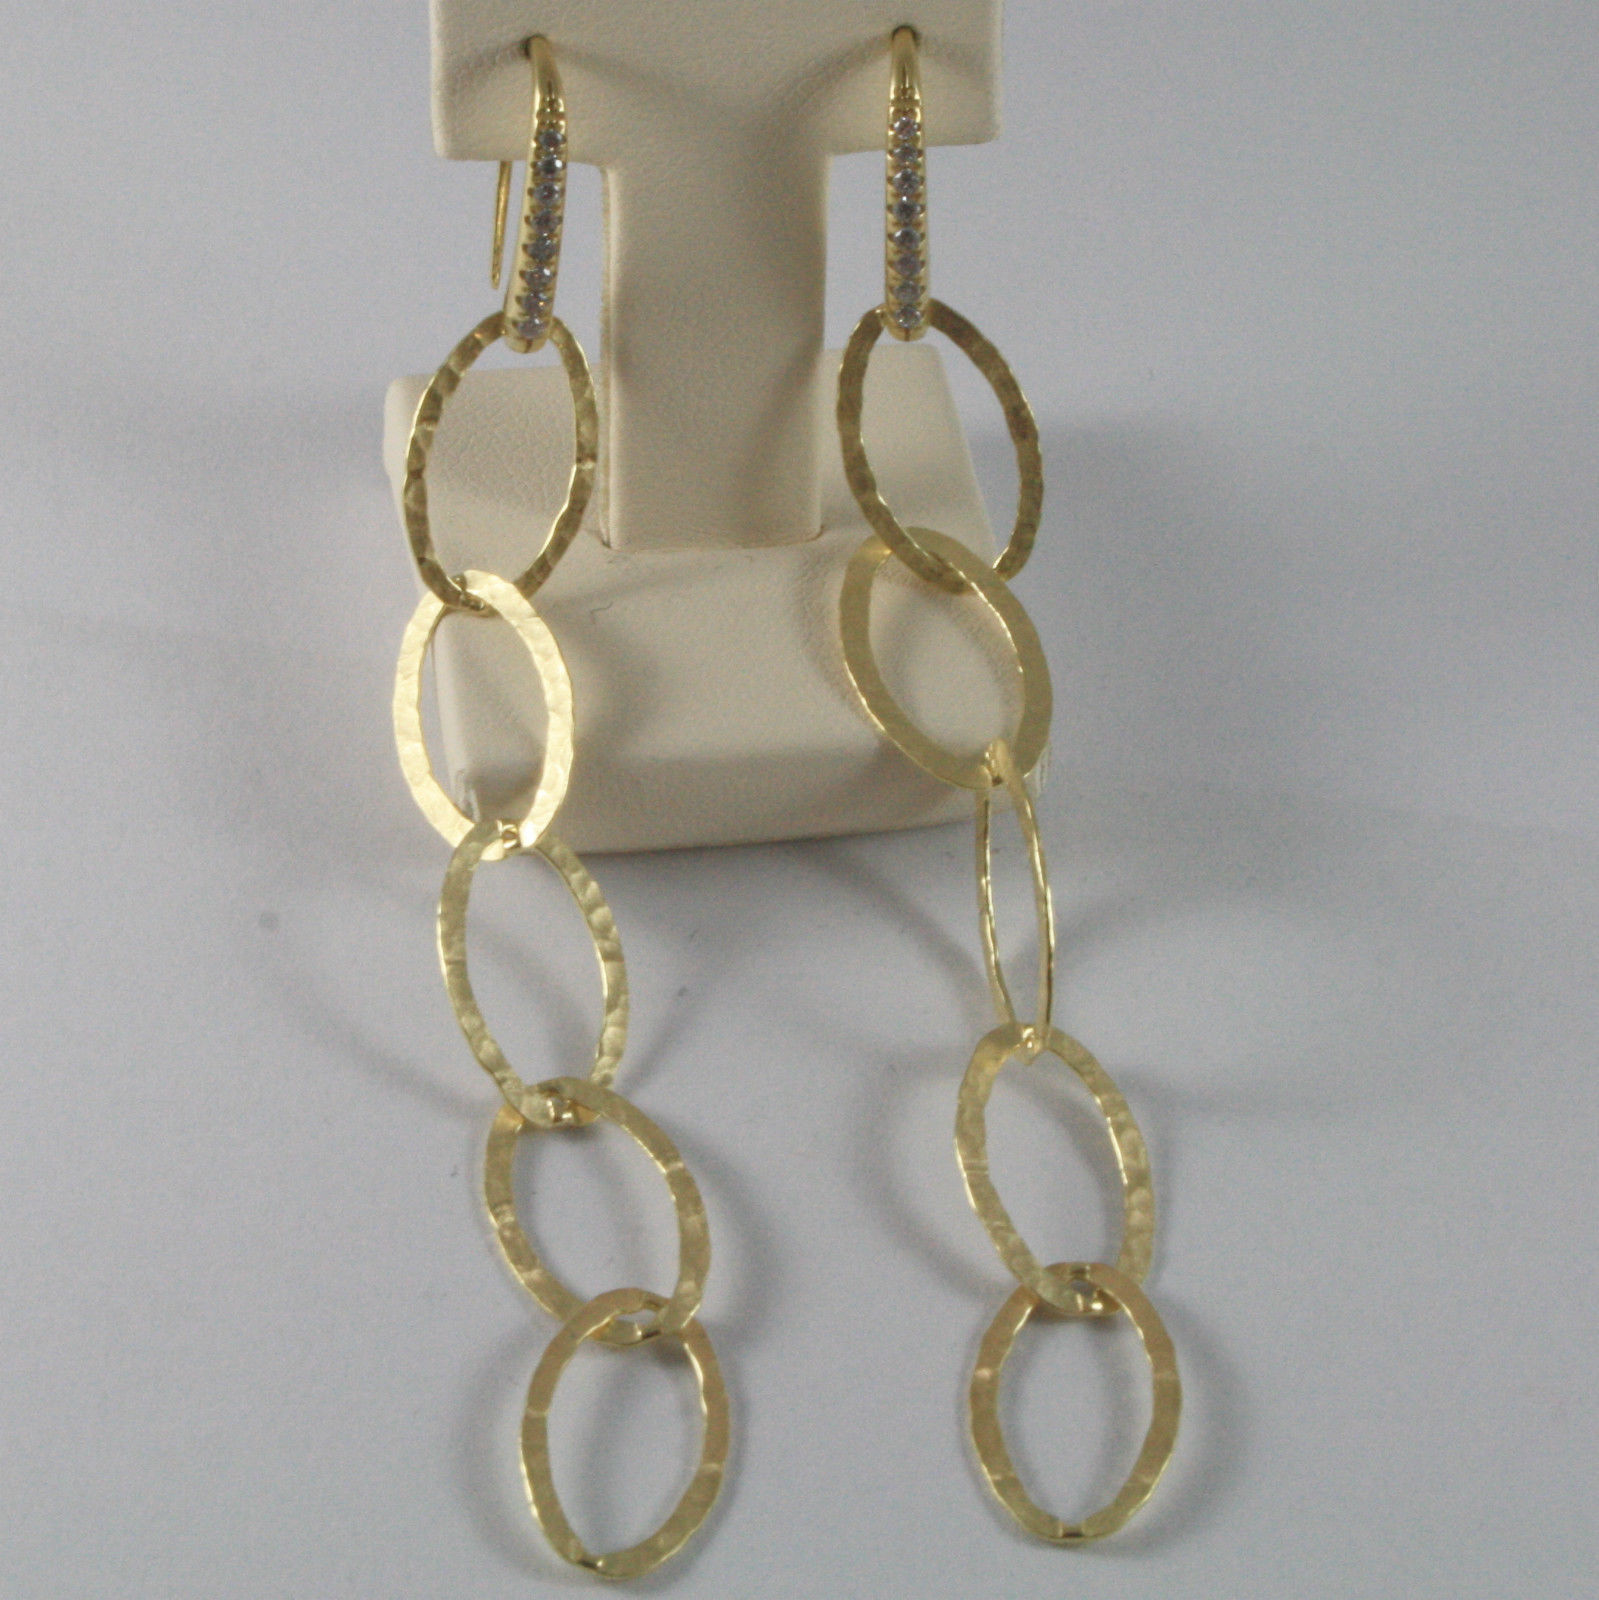 YELLOW 925 SILVER PENDANT EARRINGS, OVAL HAND HAMMERED BY NANIS MADE IN ITAL